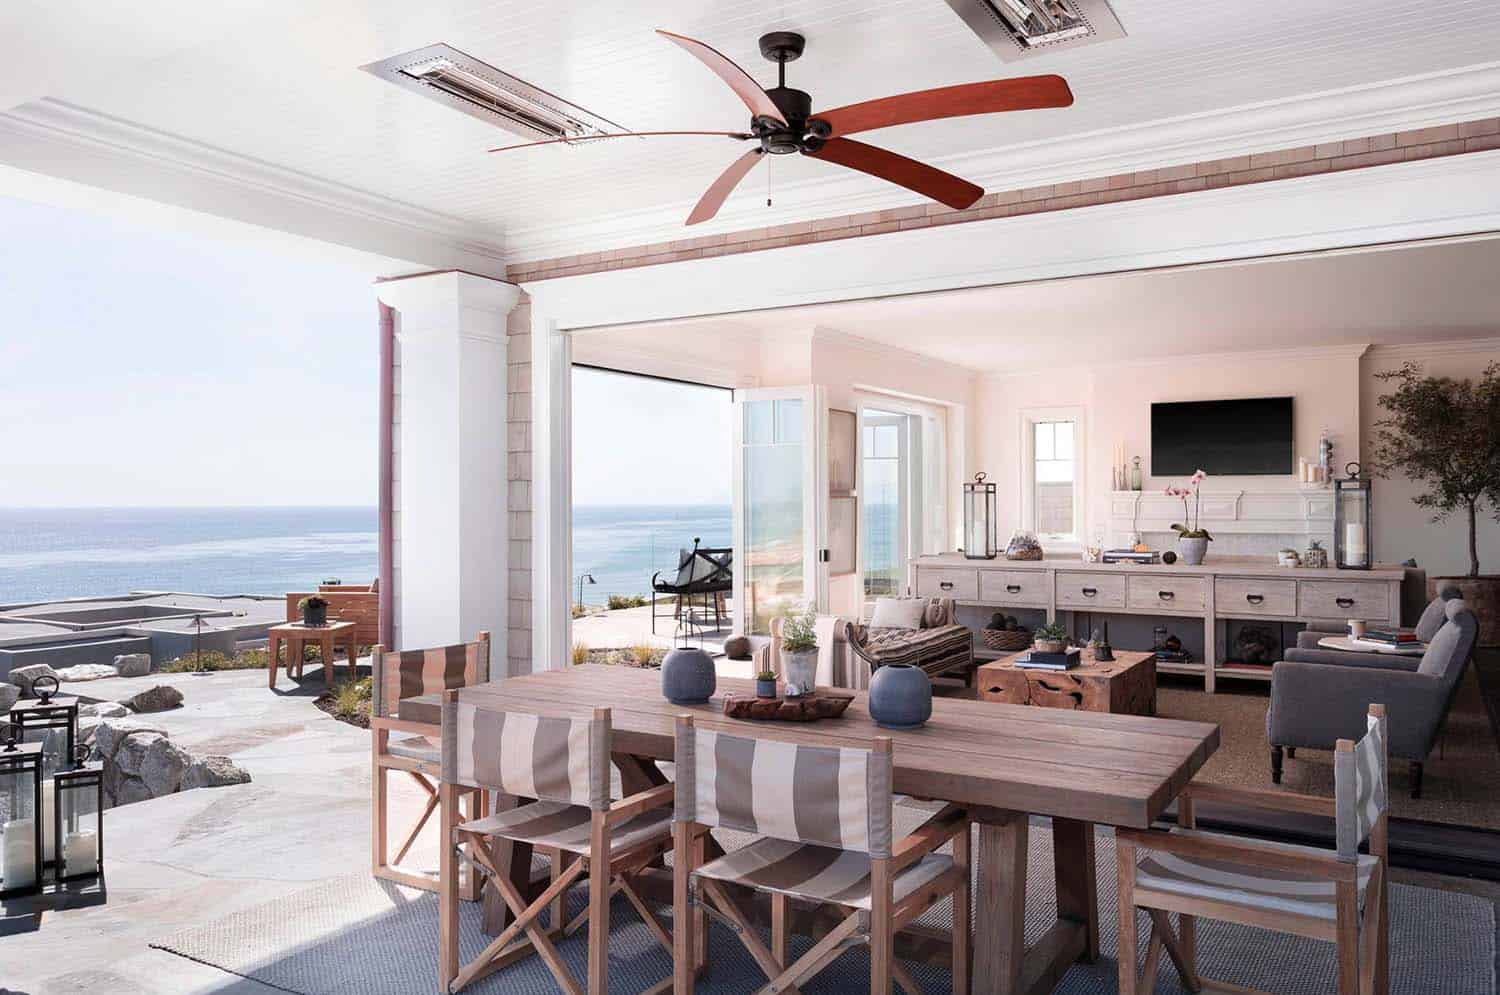 Luxury Beach House-Brown Design Group-04-1 Kindesign